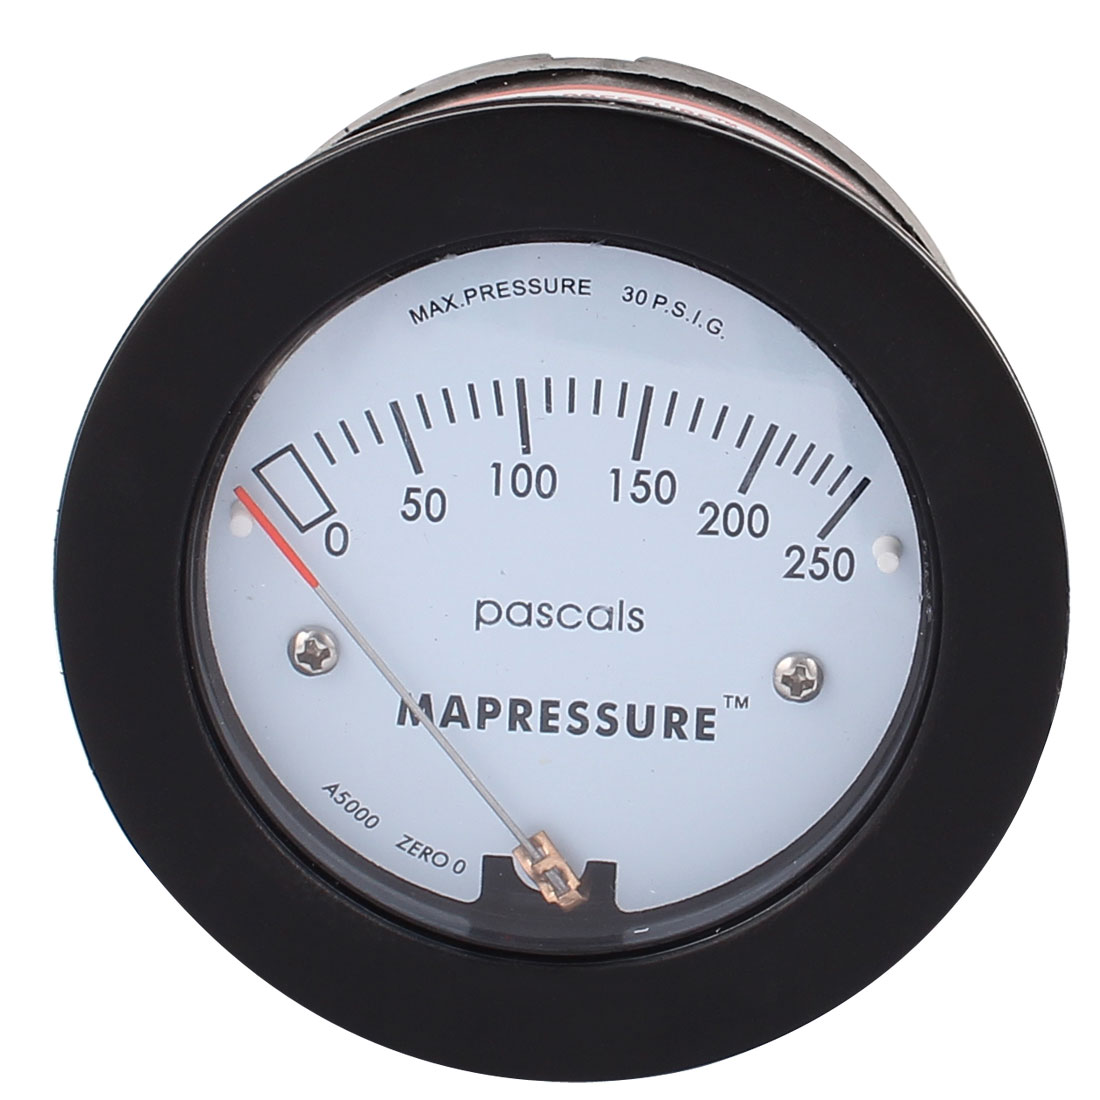 Series 5000 0-250Pa 30 PSIG Photohelic Differential Pressure Gauge Meter